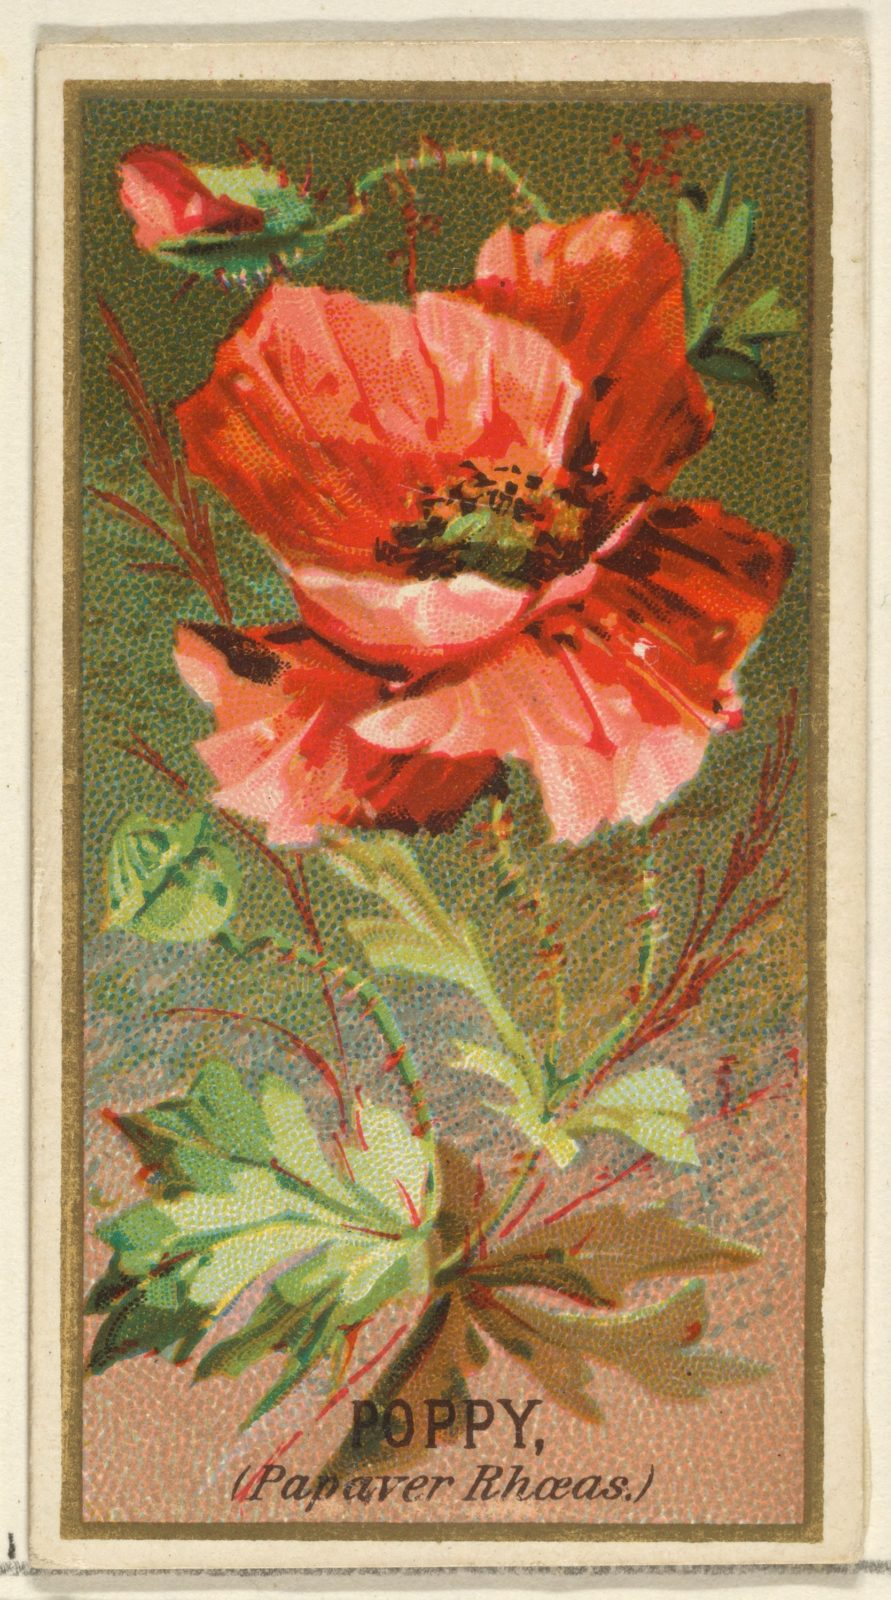 Poppy Papaver Rhoeas From The Flowers Series For Old Judge